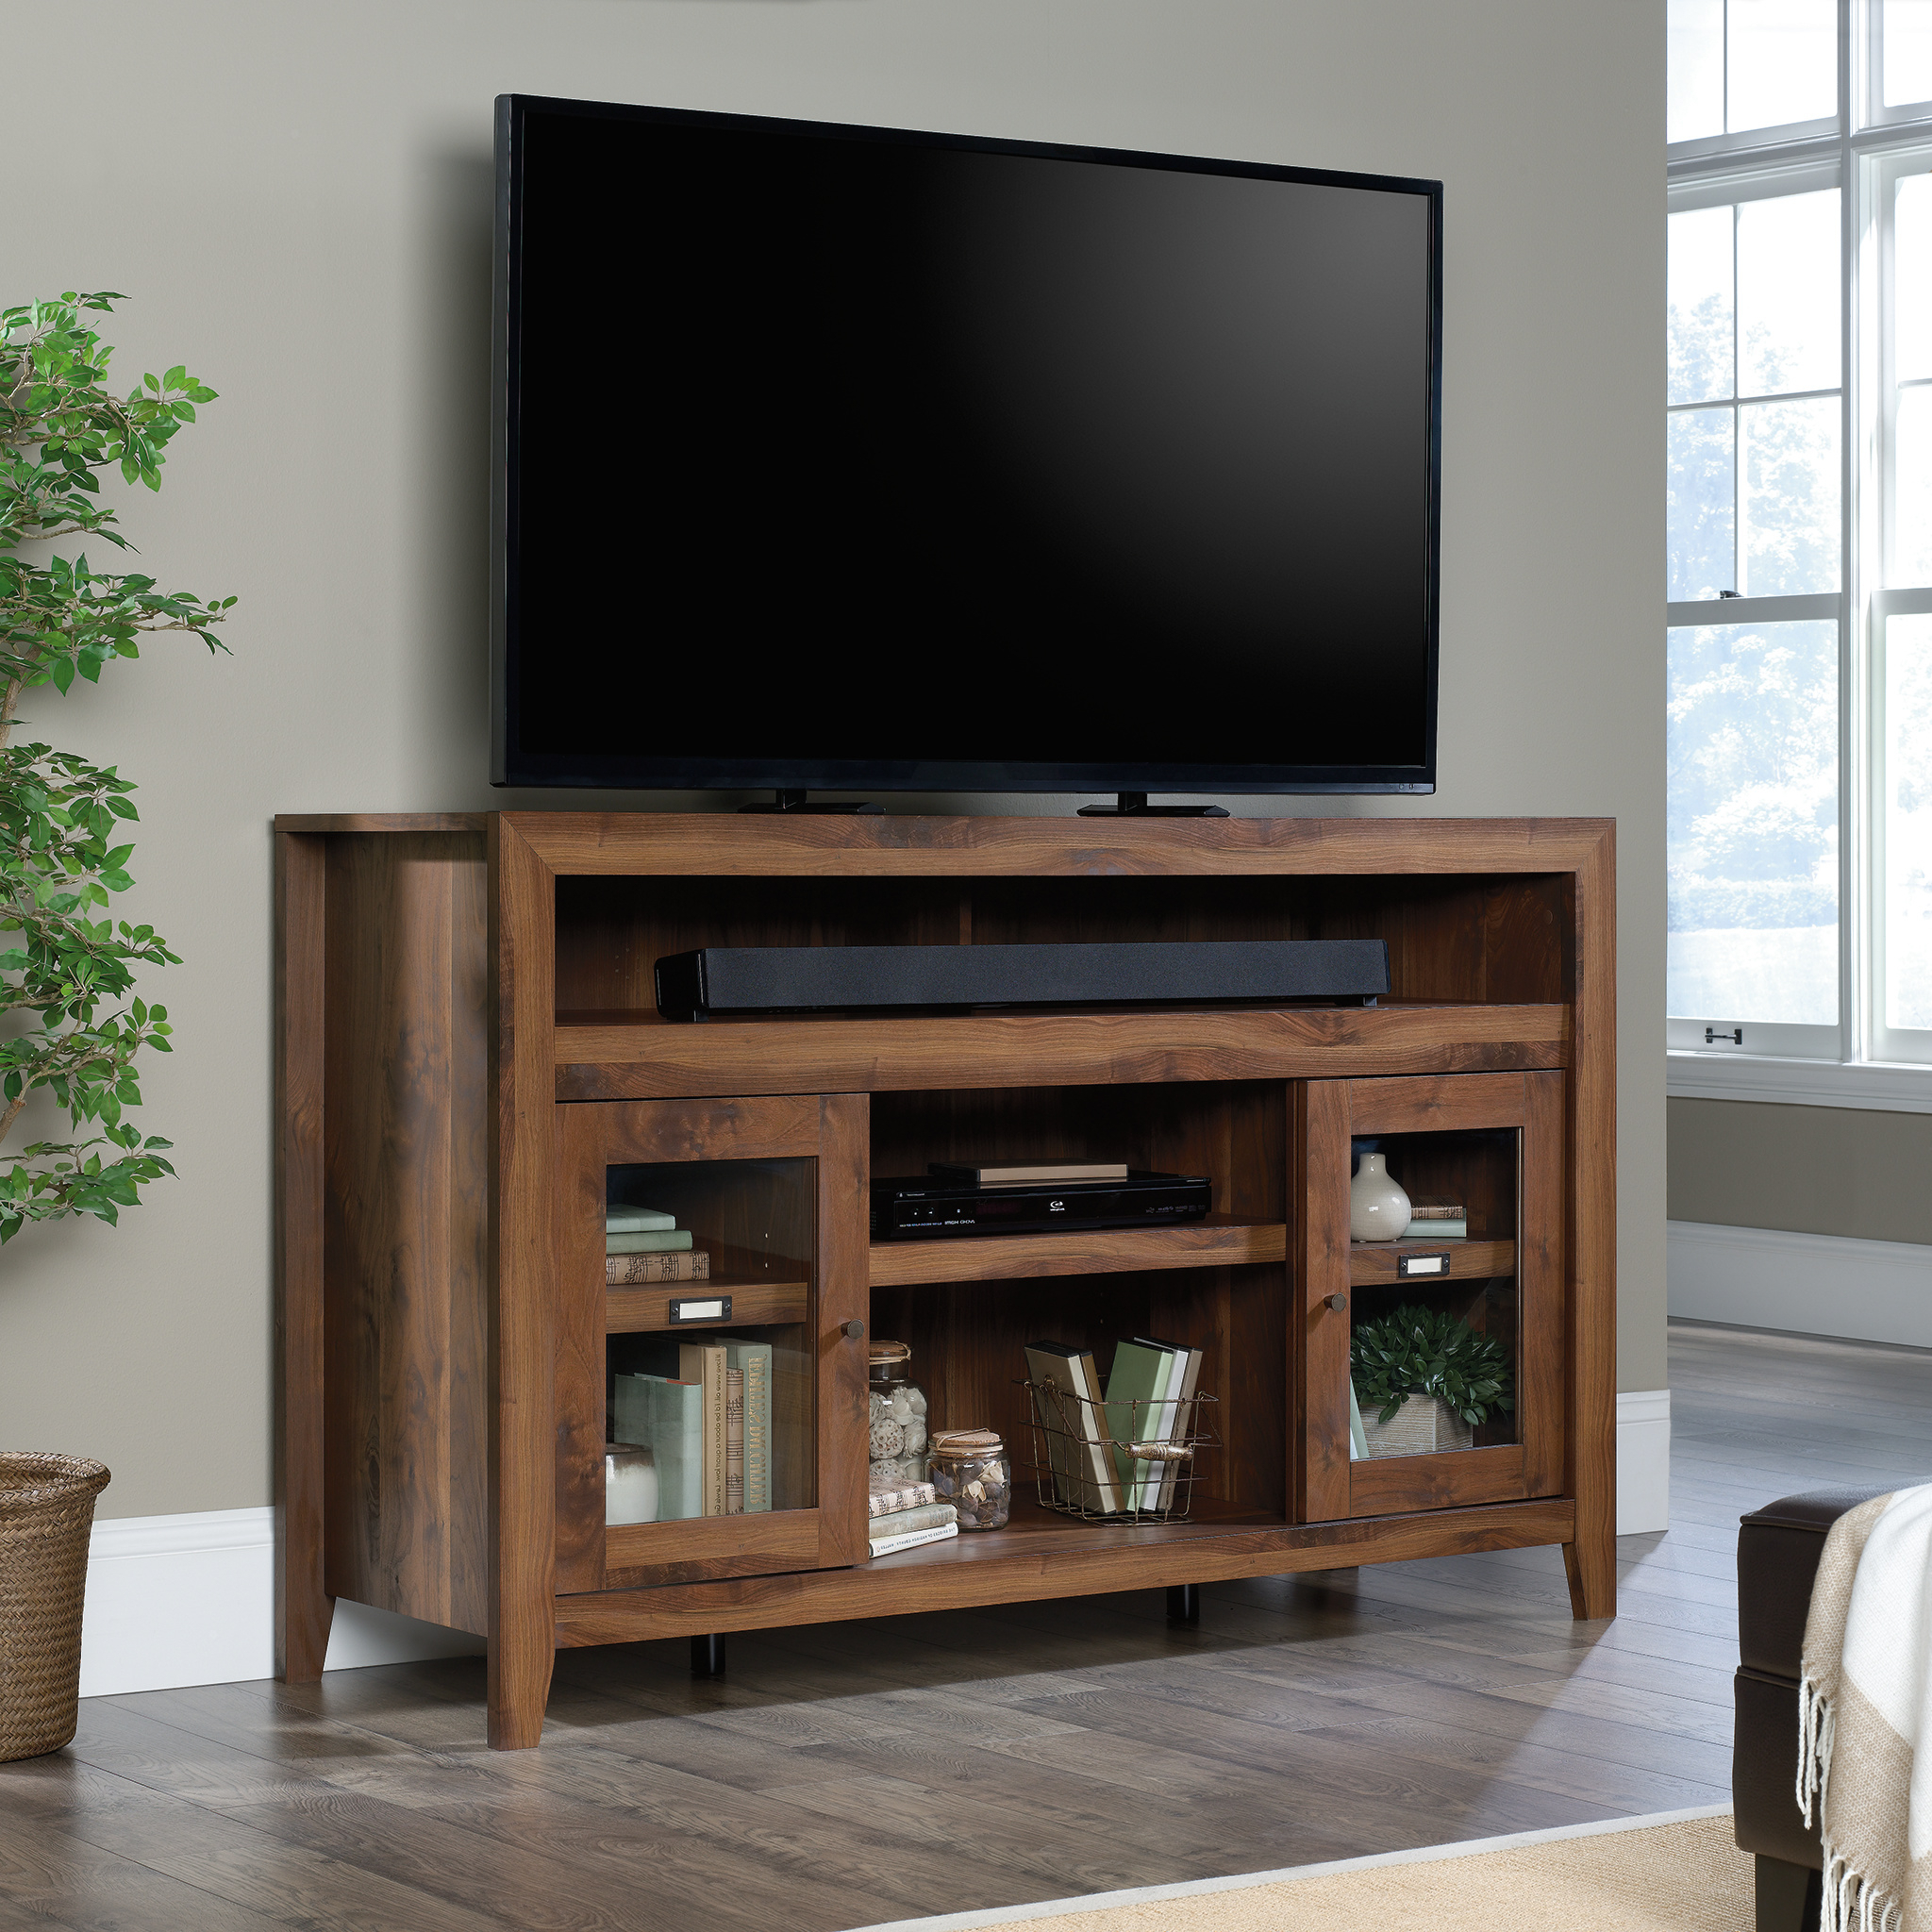 """Widely Used Sauder Dakota Pass Tv Stand Credenza For Tvs Up To 60 For Ahana Tv Stands For Tvs Up To 60"""" (View 8 of 25)"""